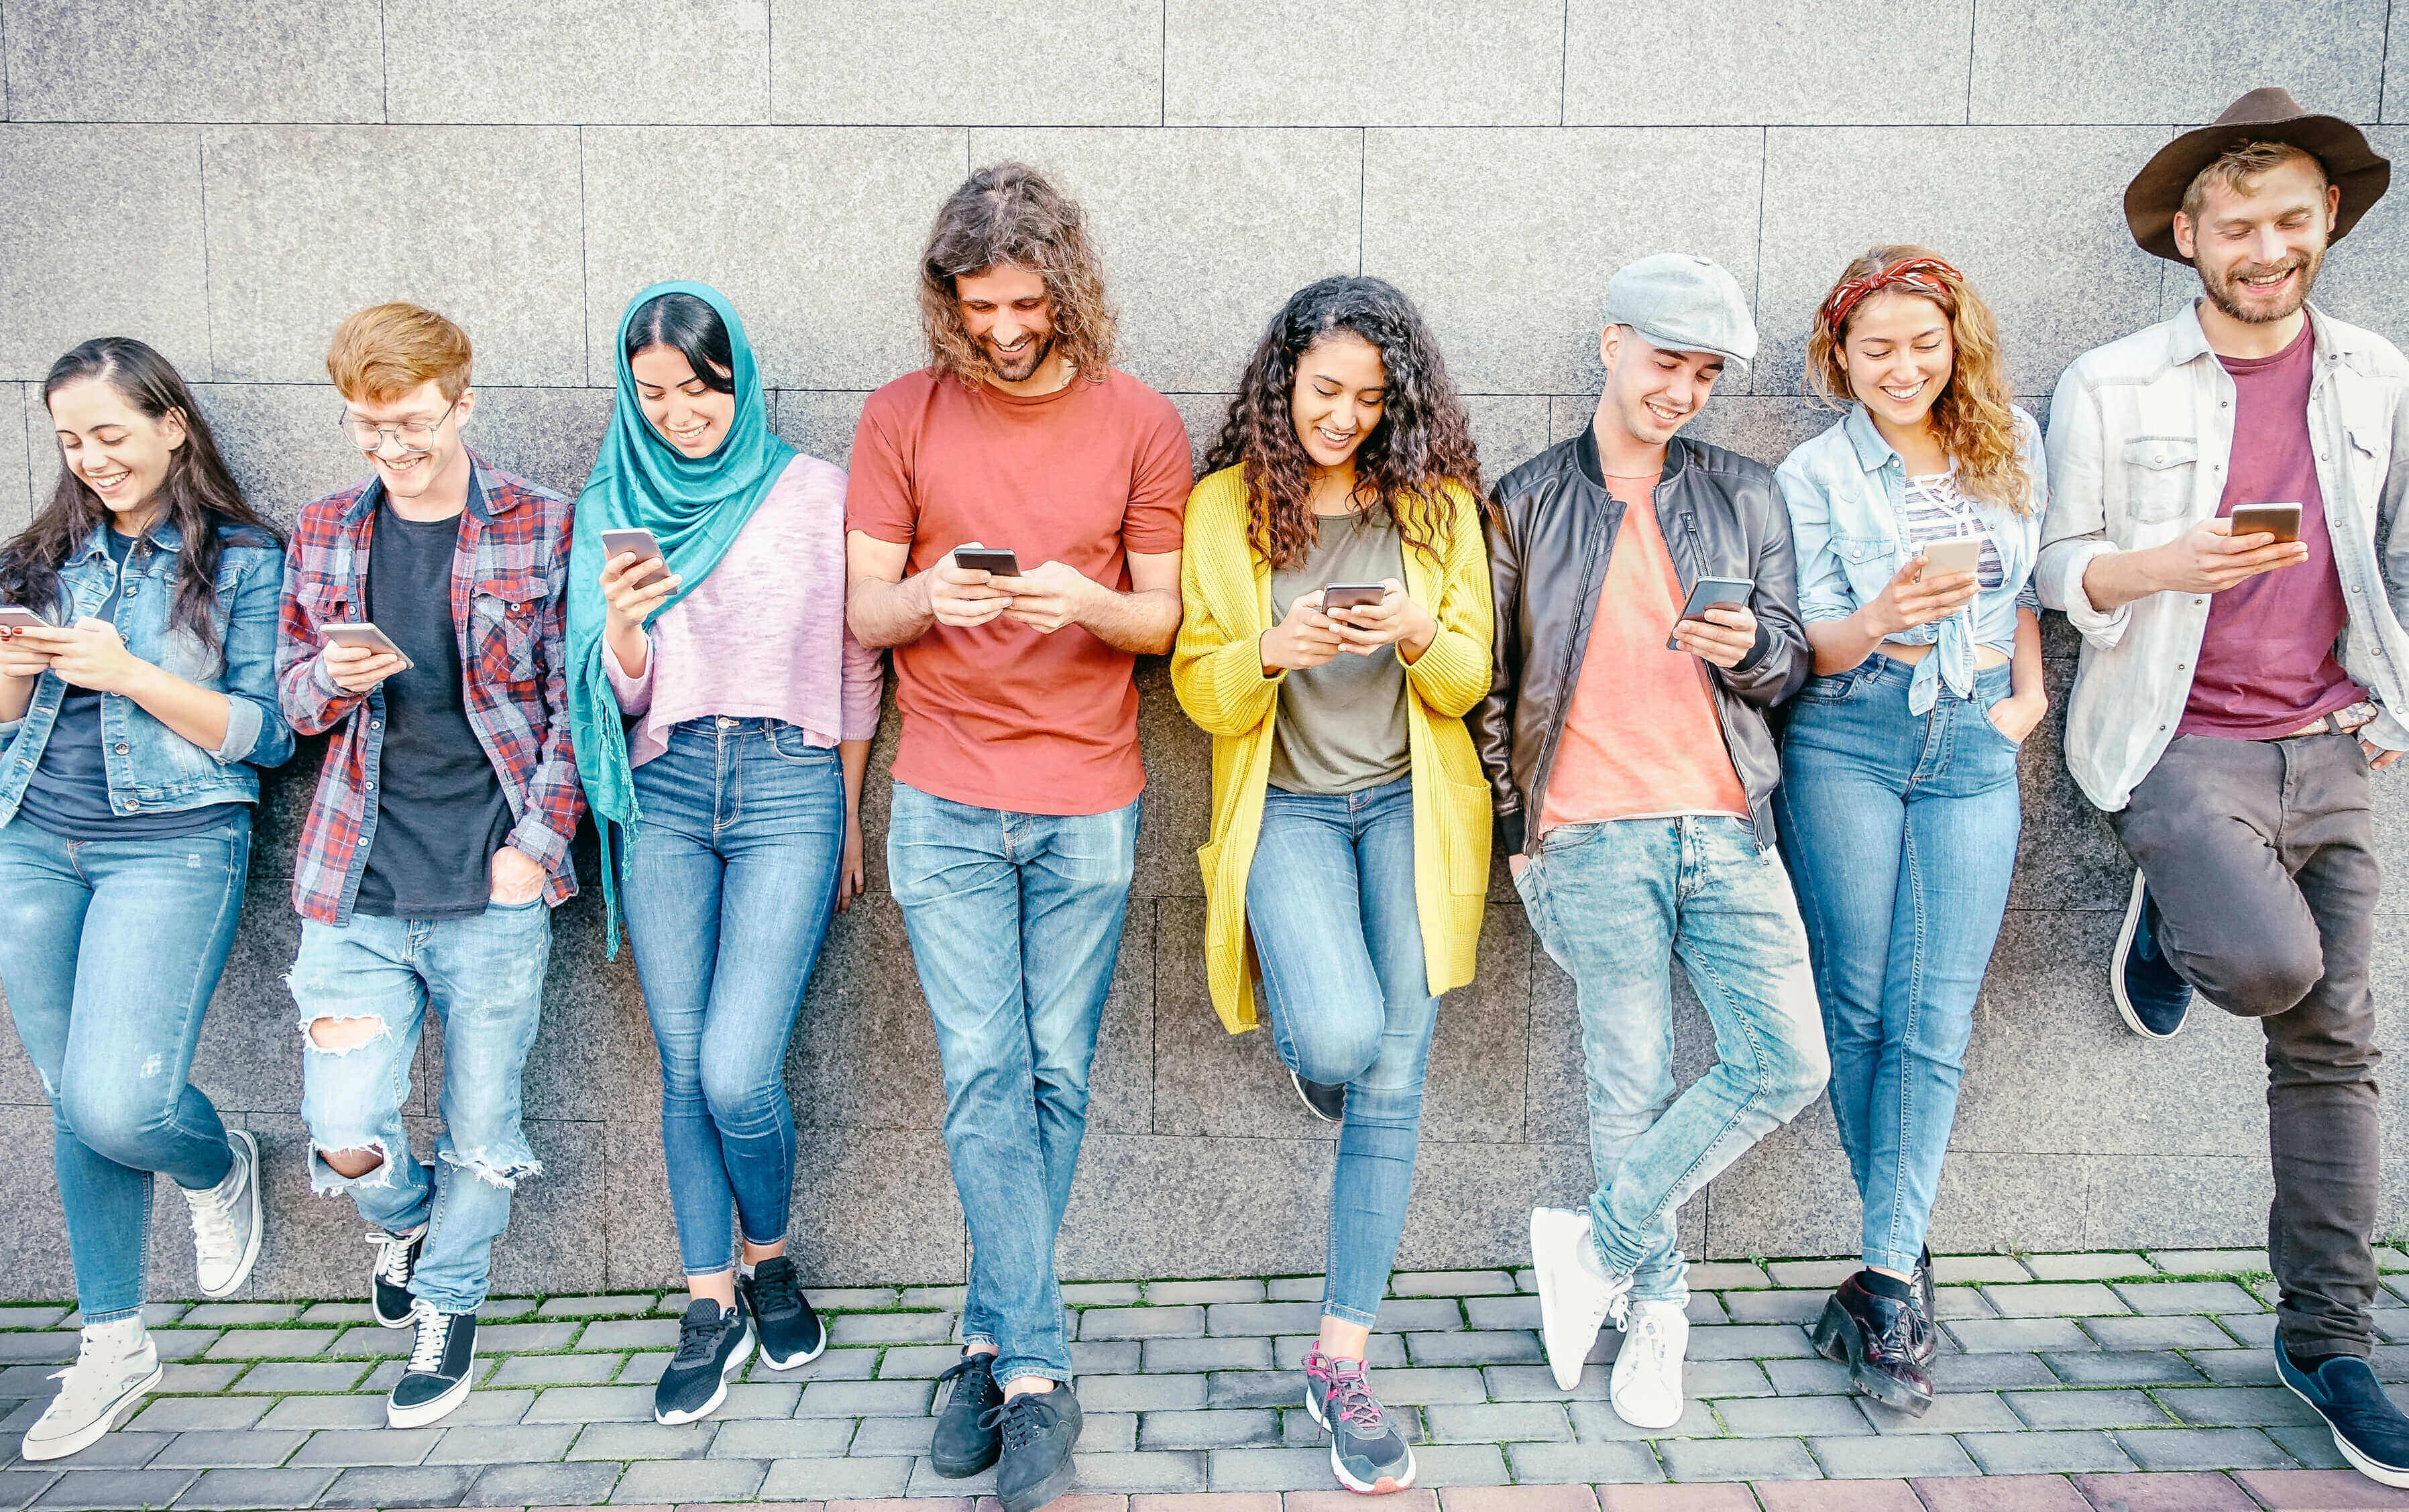 a group of young people with smartphones on their hands